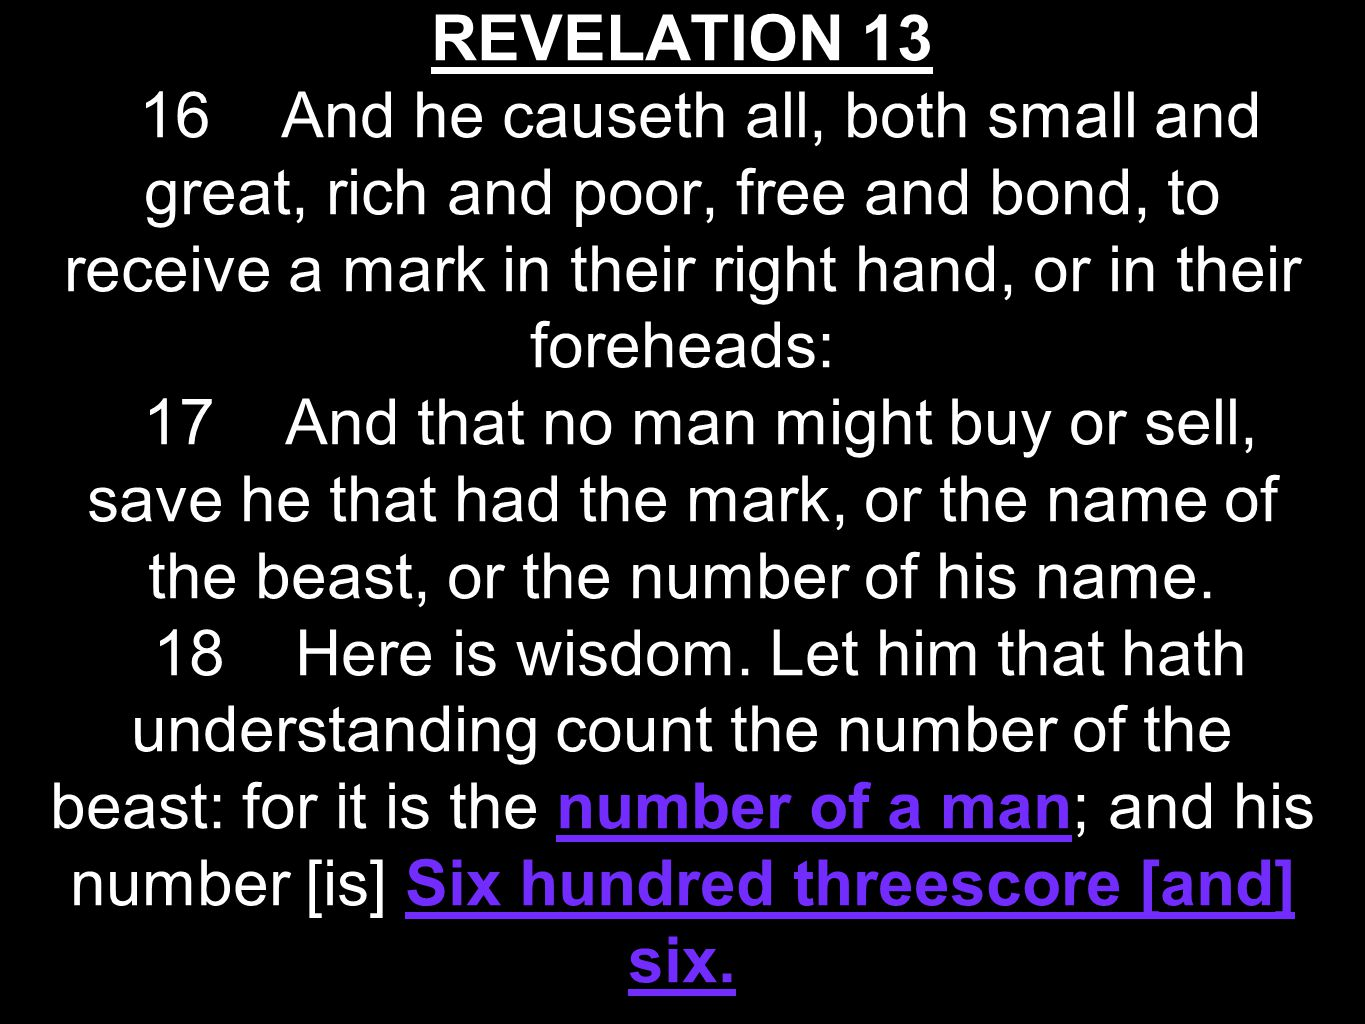 REVELATION 13 16 And he causeth all, both small and great, rich and poor, free and bond, to receive a mark in their right hand, or in their foreheads: 17 And that no man might buy or sell, save he that had the mark, or the name of the beast, or the number of his name.